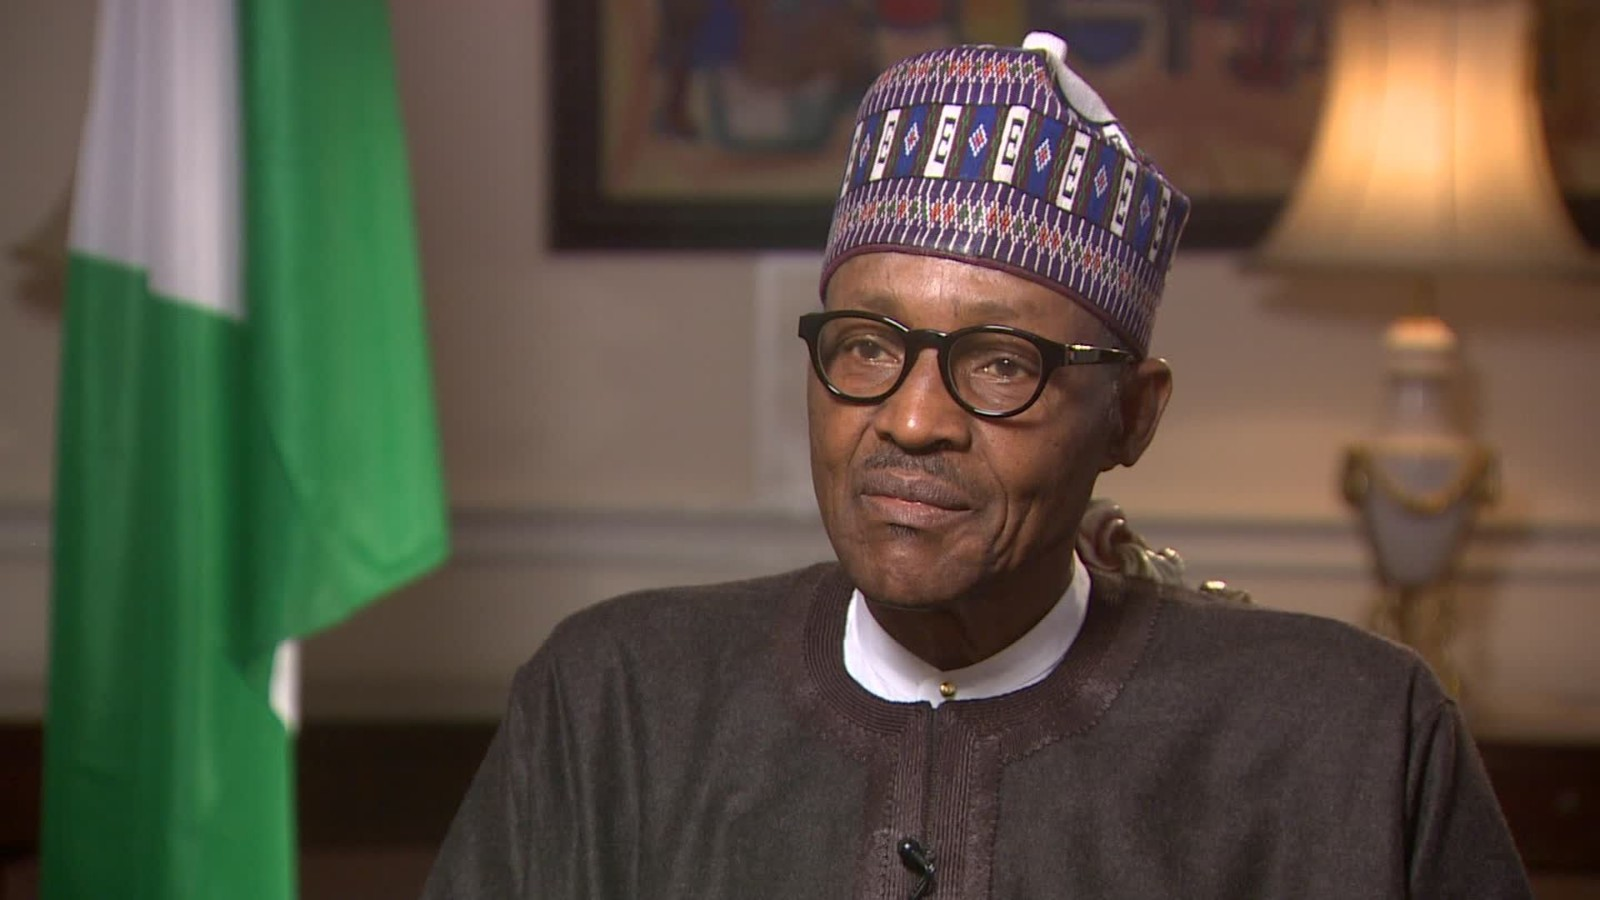 Appeal Court Gives President Buhari 5 Days To Respond To Case Of Alleged Certificate Fraud 1